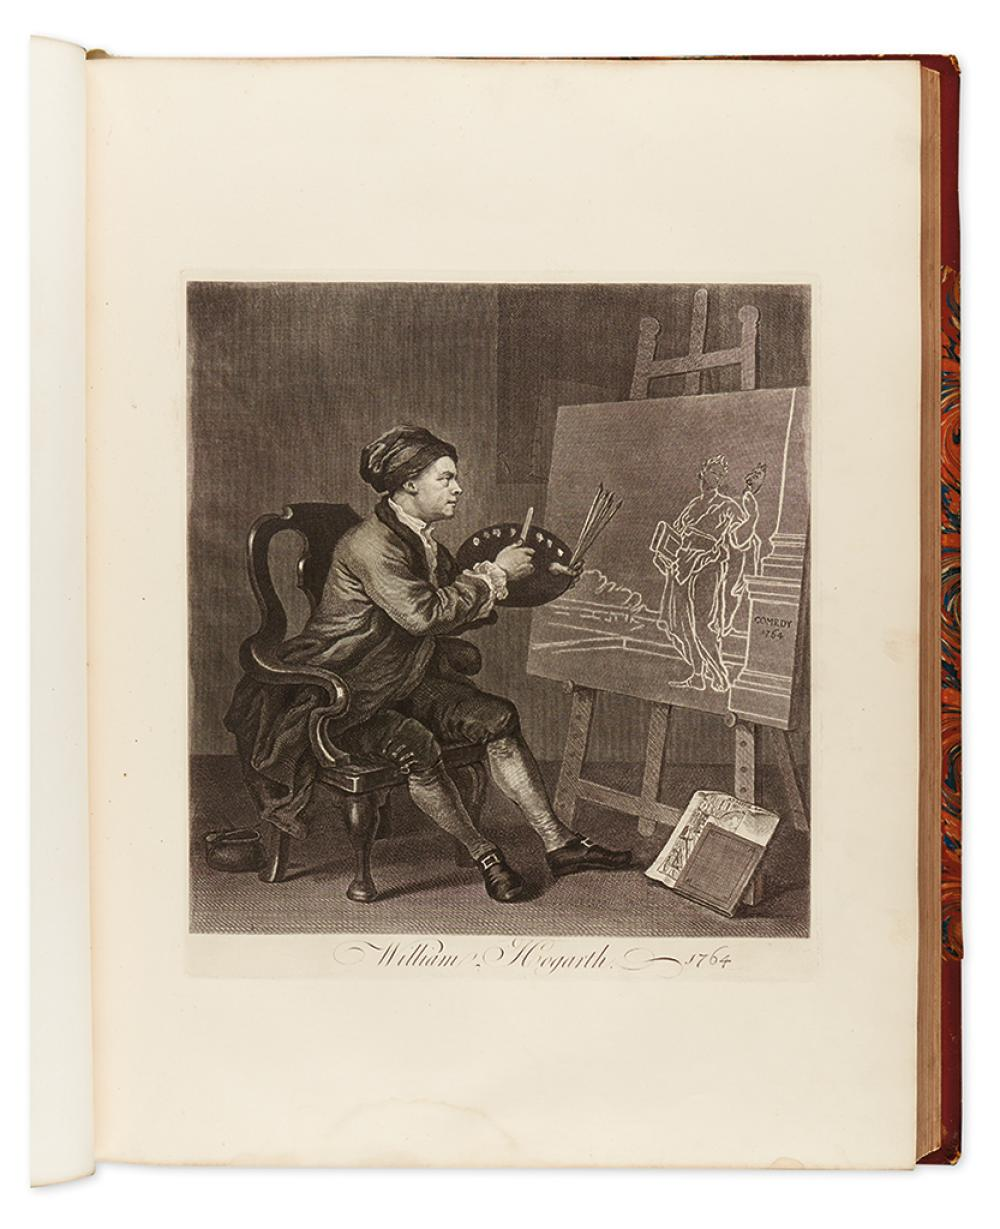 HOGARTH, WILLIAM. The Works, from the Original Plates Restored by James Heath.